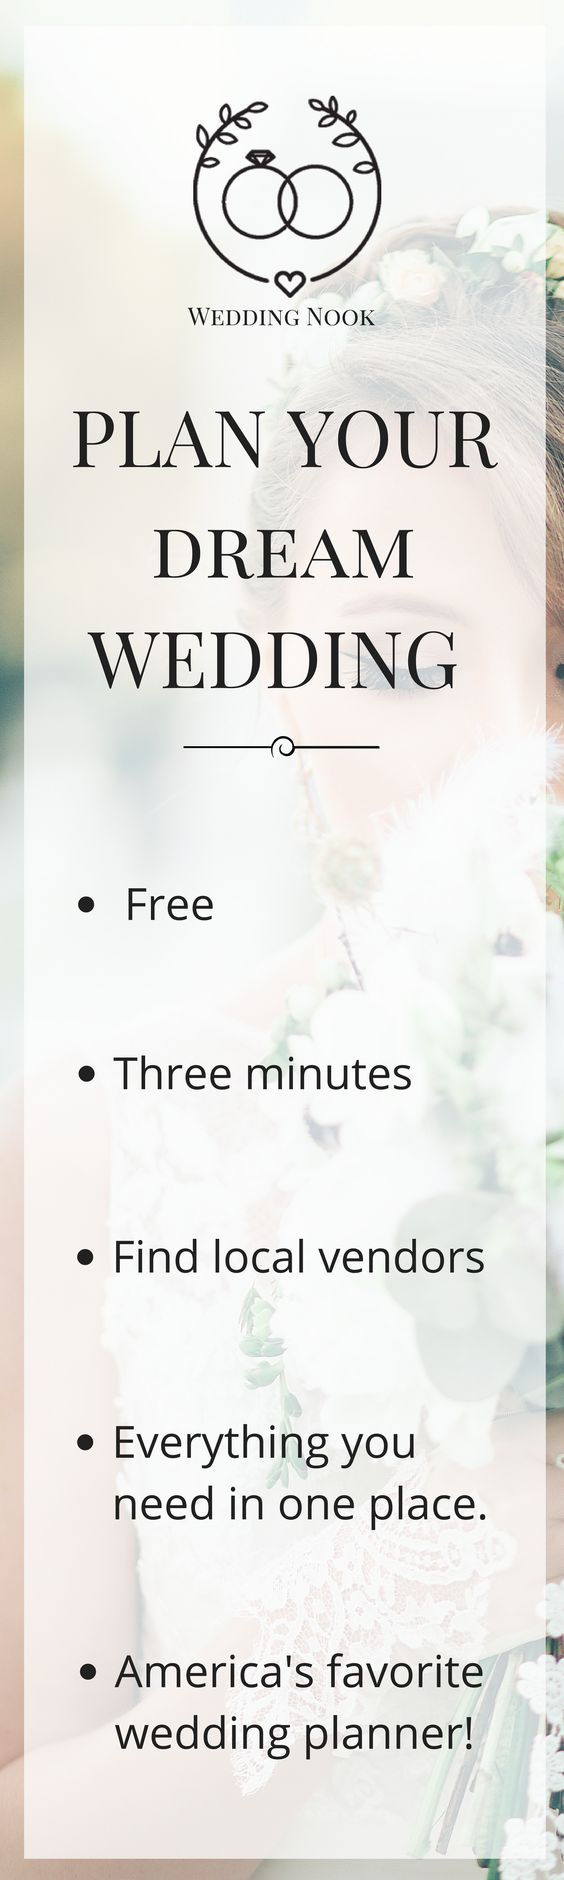 Free Budget Wedding Planner 3 Minutes to plan you dream wedding